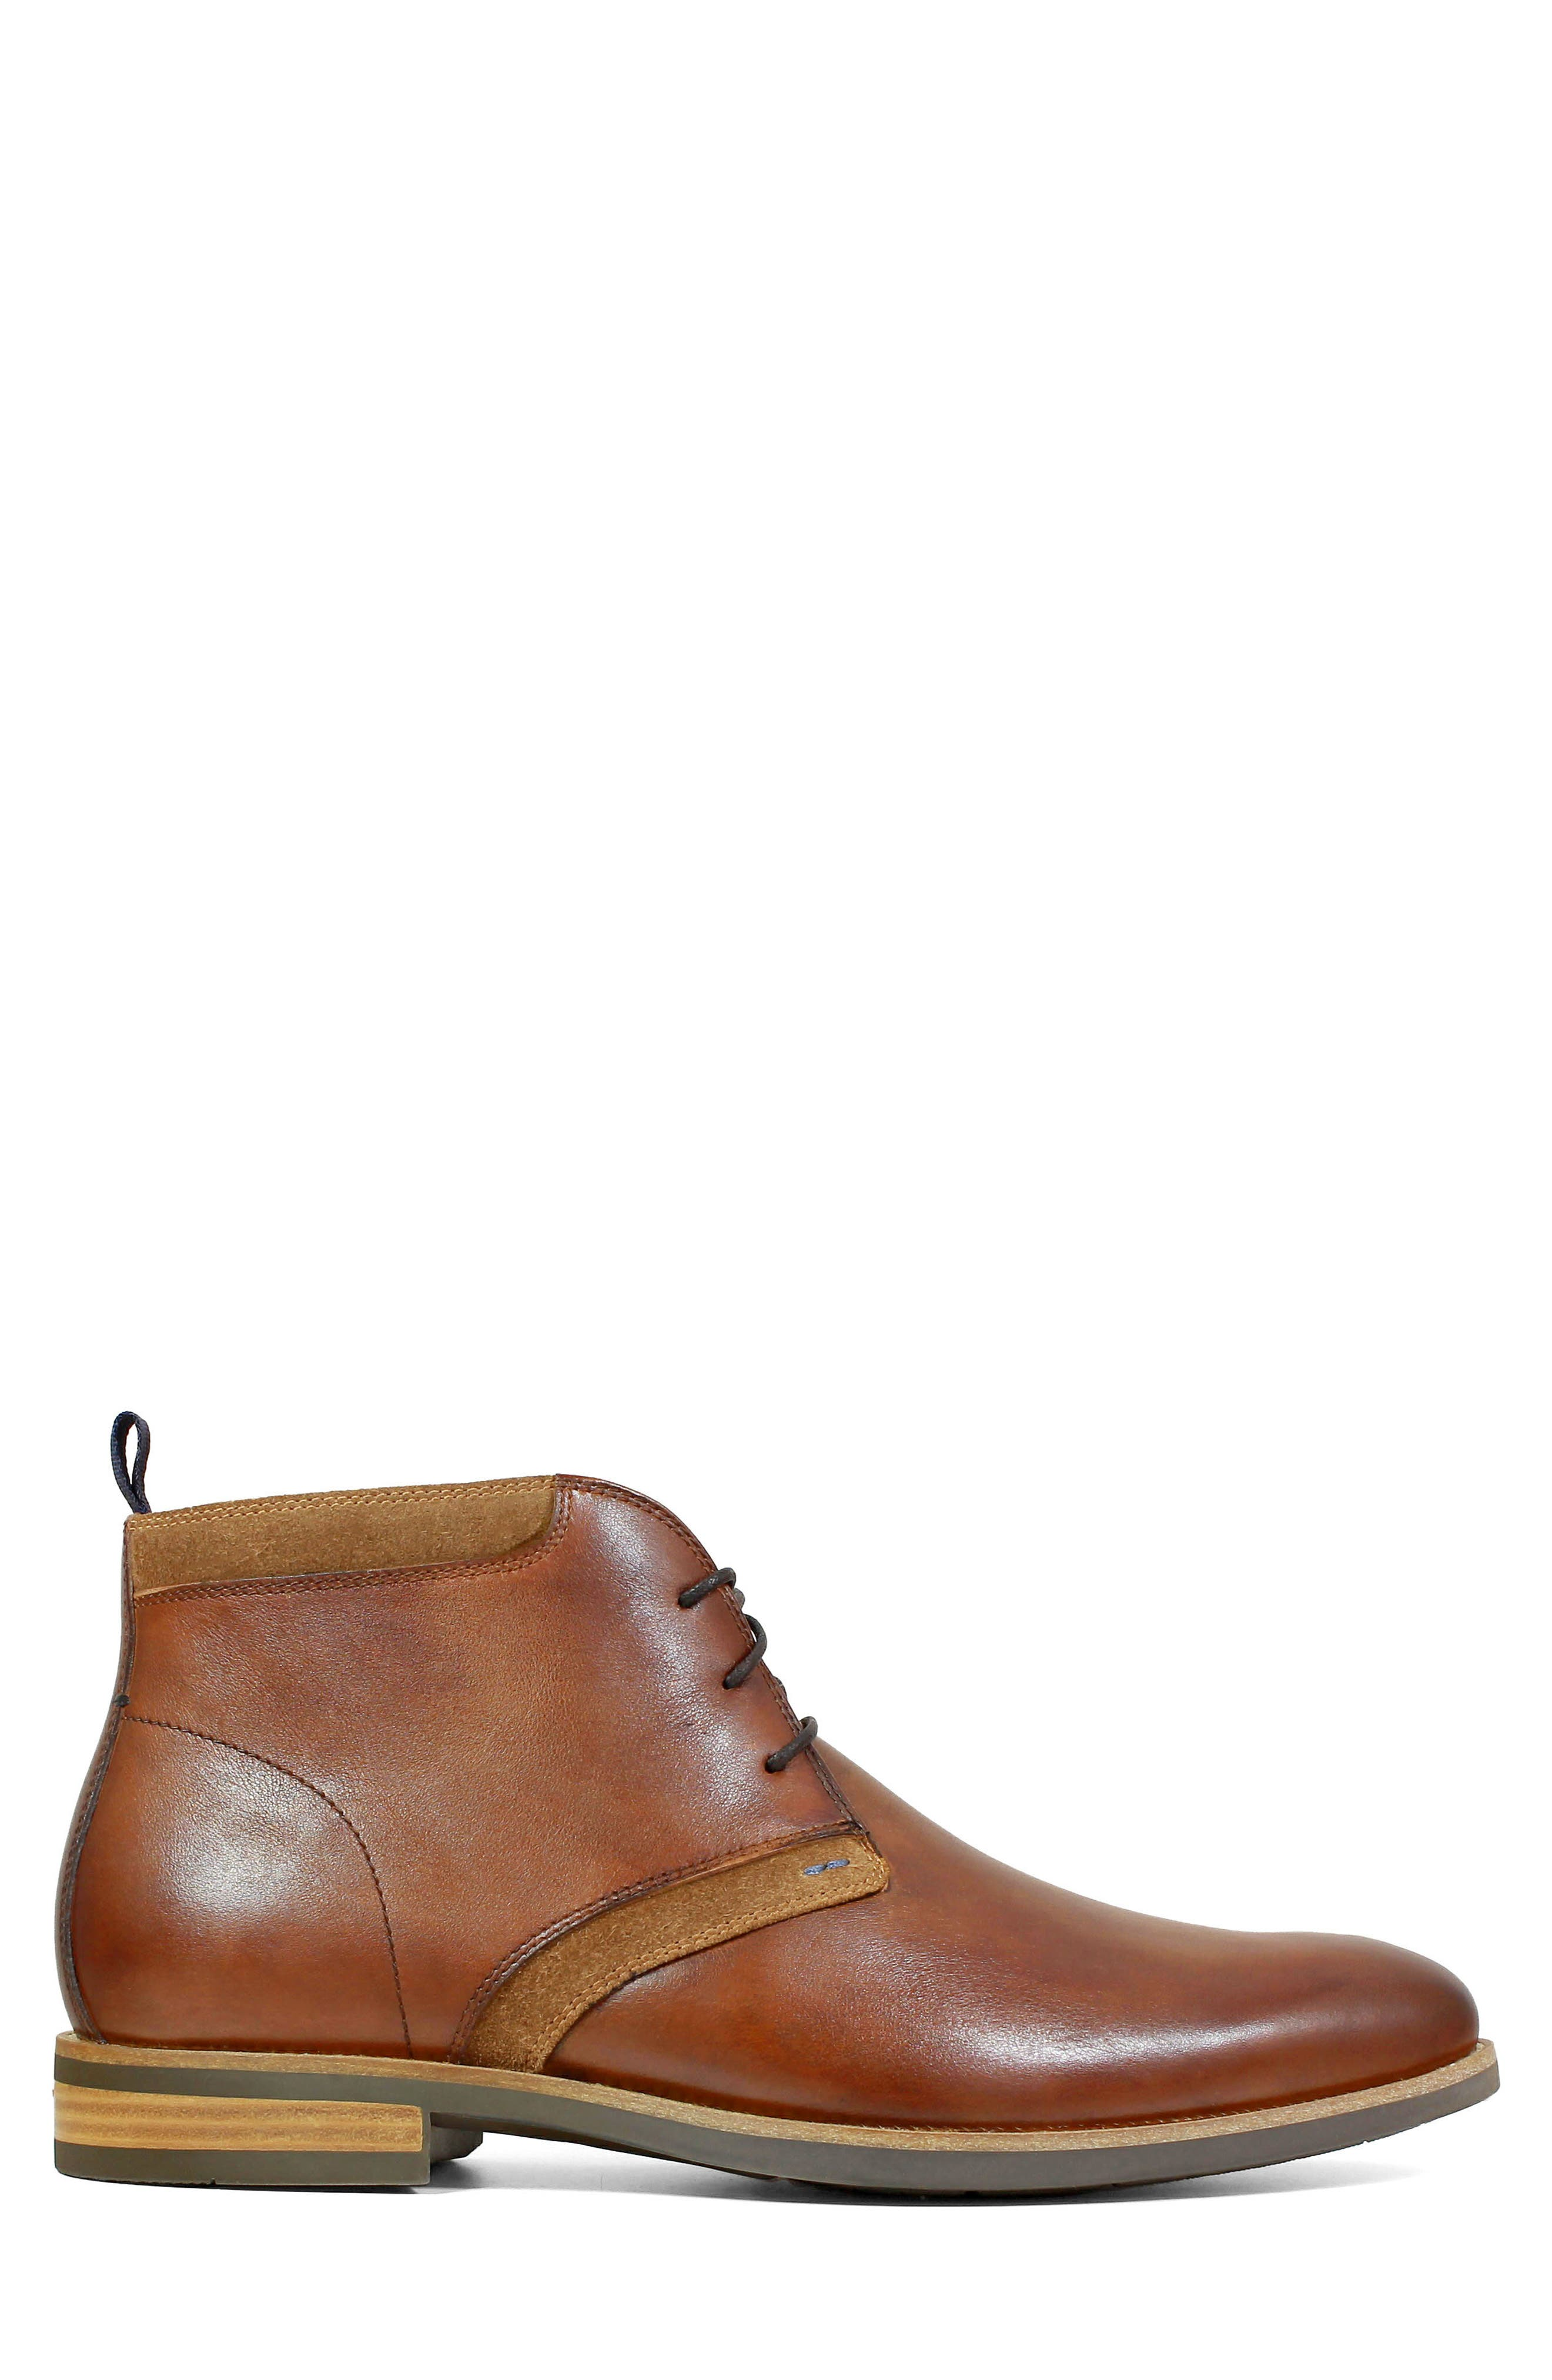 FLORSHEIM, Uptown Chukka Boot, Alternate thumbnail 3, color, COGNAC LEATHER